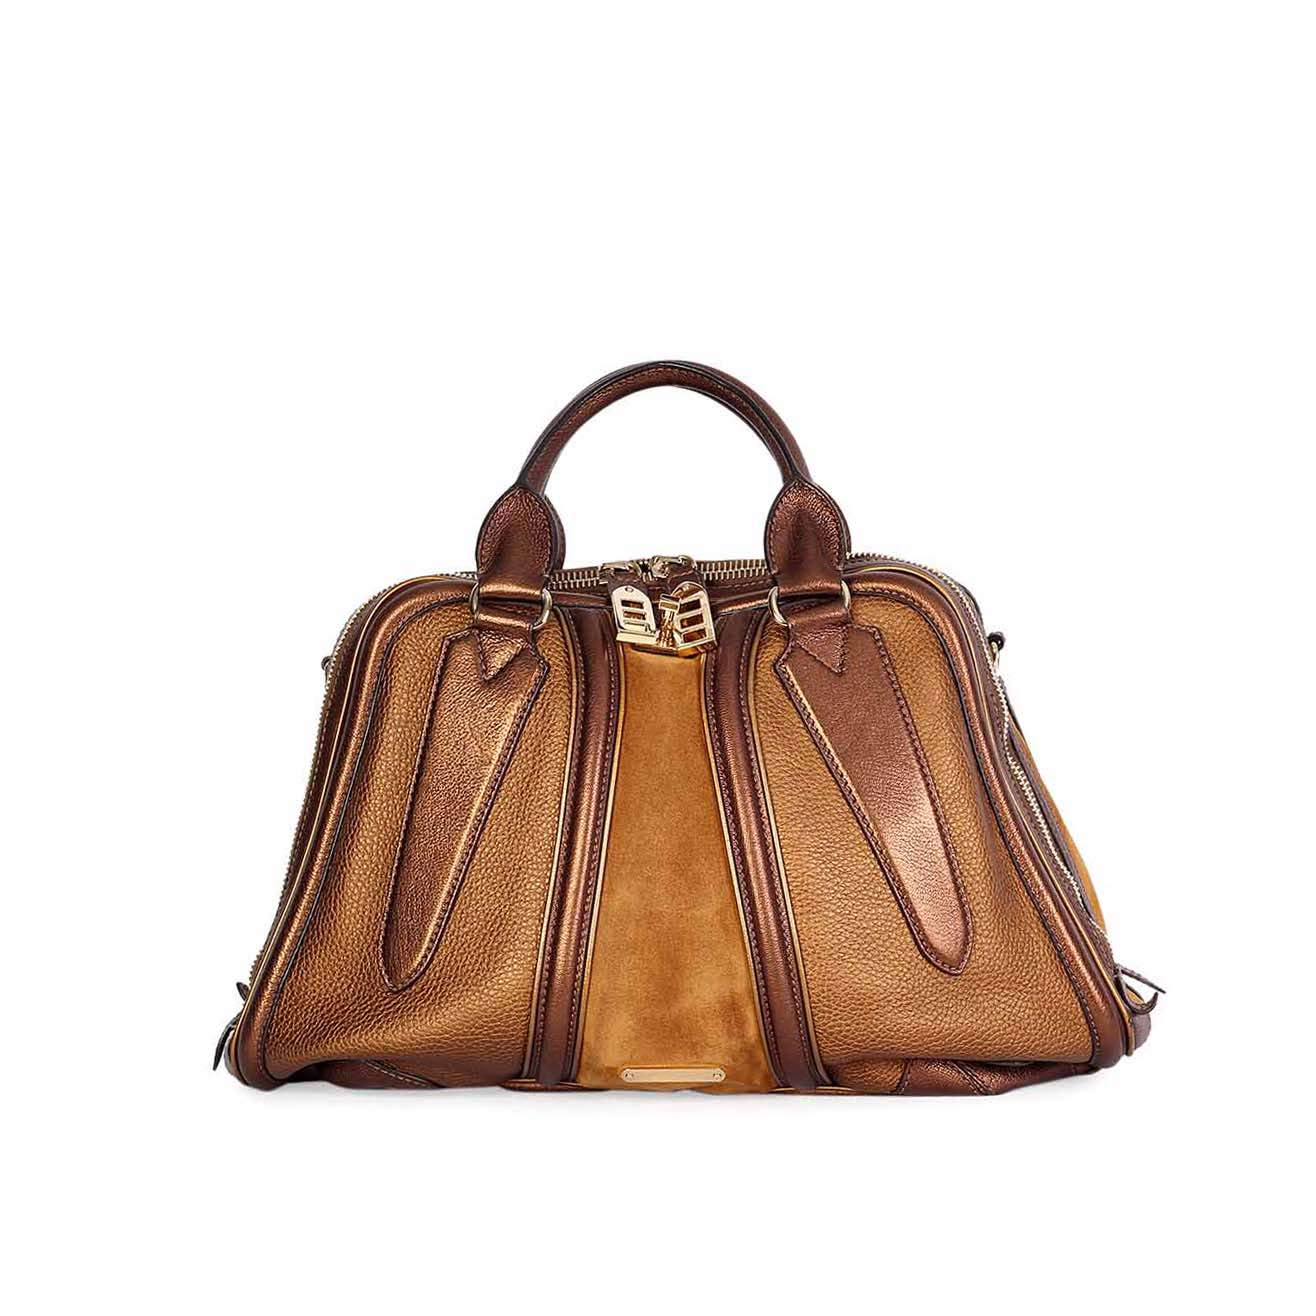 Burberry Metallic Leather Amp Suede Bowling Bag Luxity